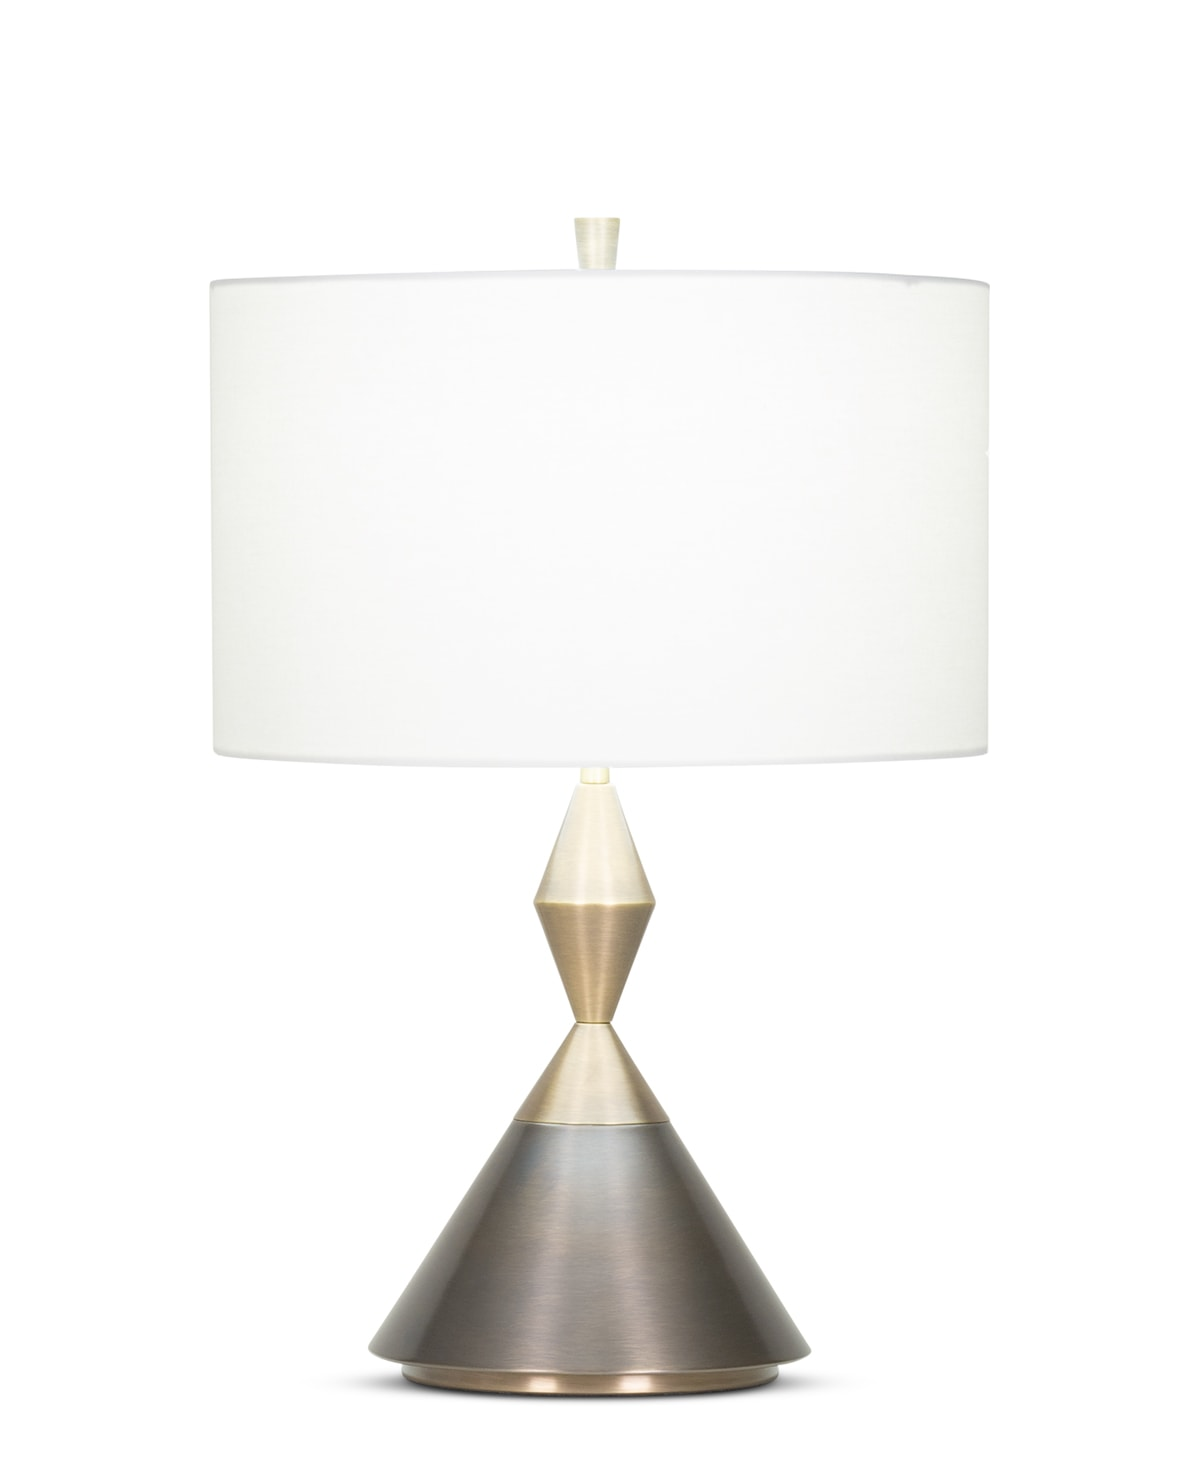 FlowDecor Ontario Table Lamp in metal with antique brass & bronze finishes and off-white linen drum shade (# 4099)